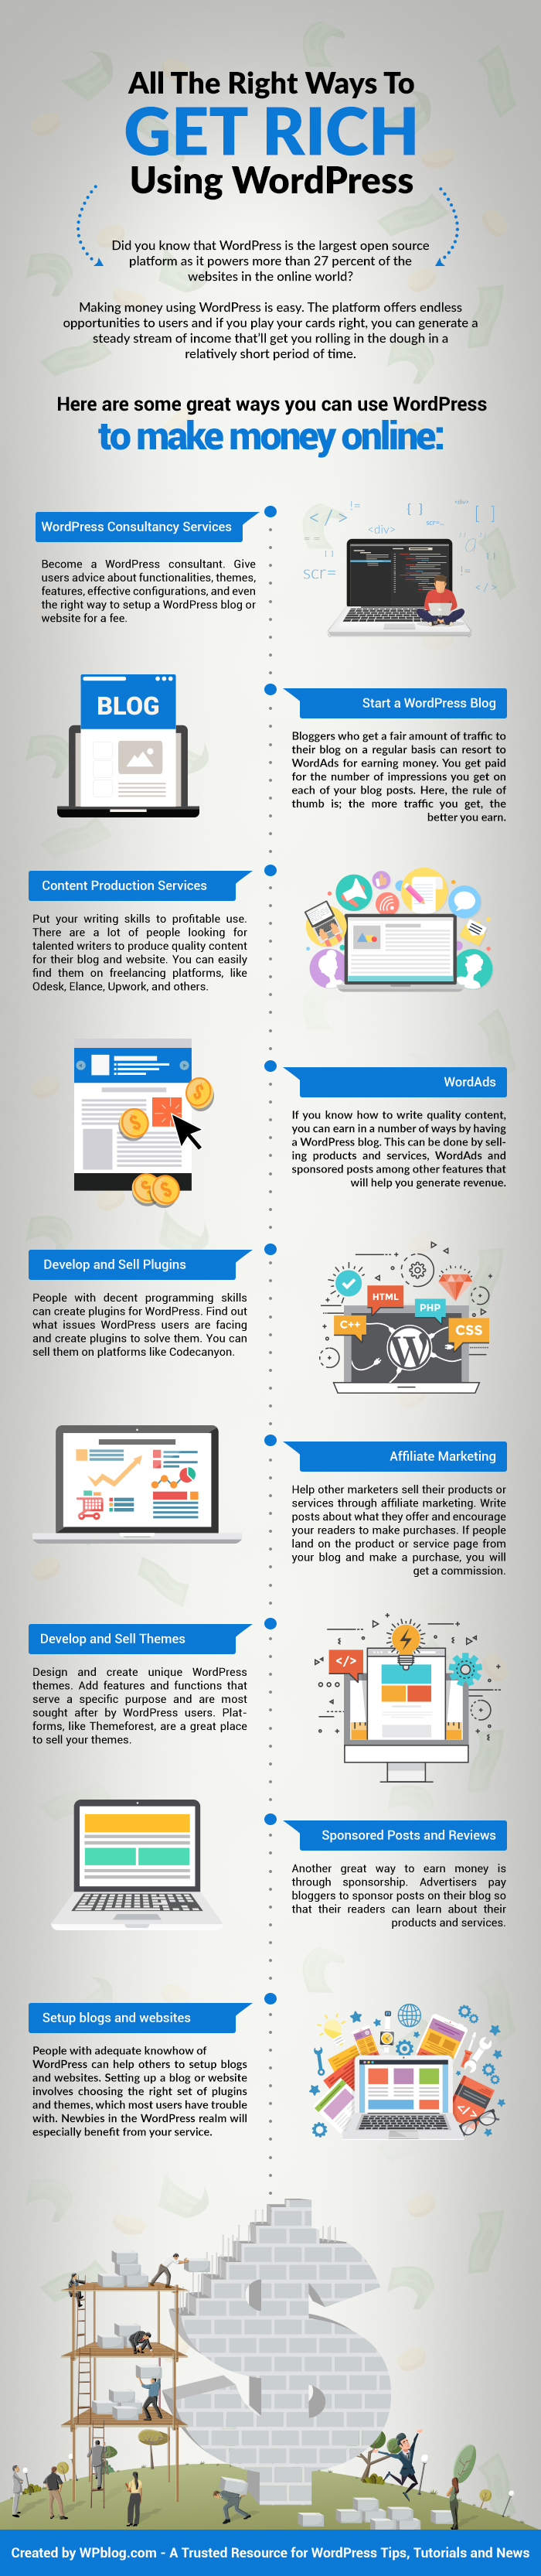 make money with wordpress infographic